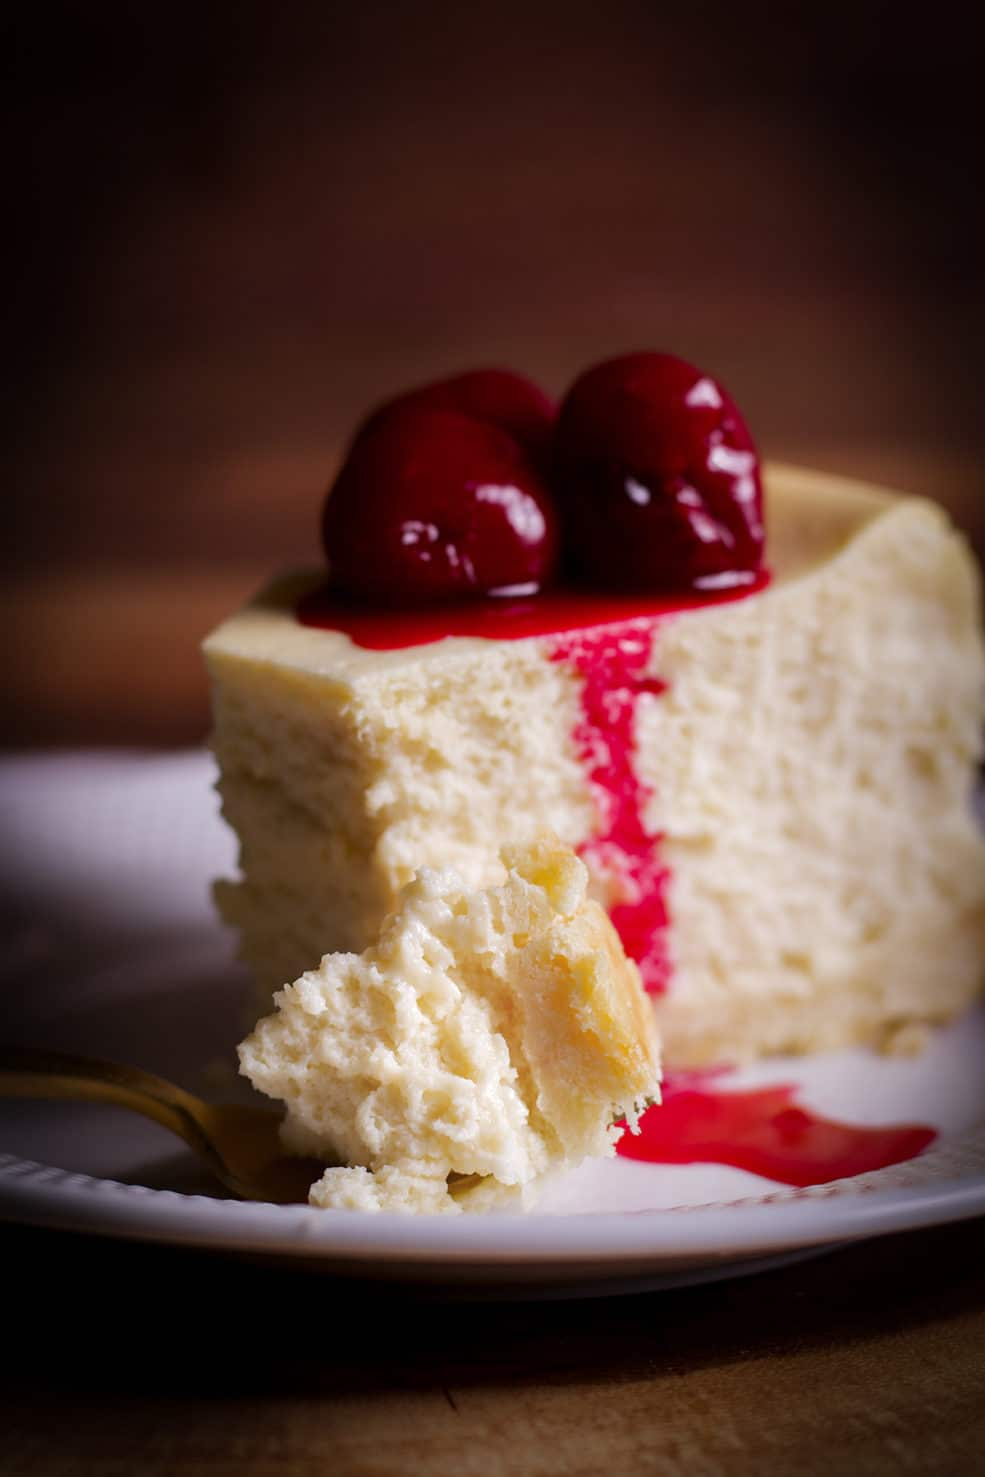 A close up shot of a bite of creamy New York Cheesecake on a fork with the rest of the slice of cheesecake behind it.